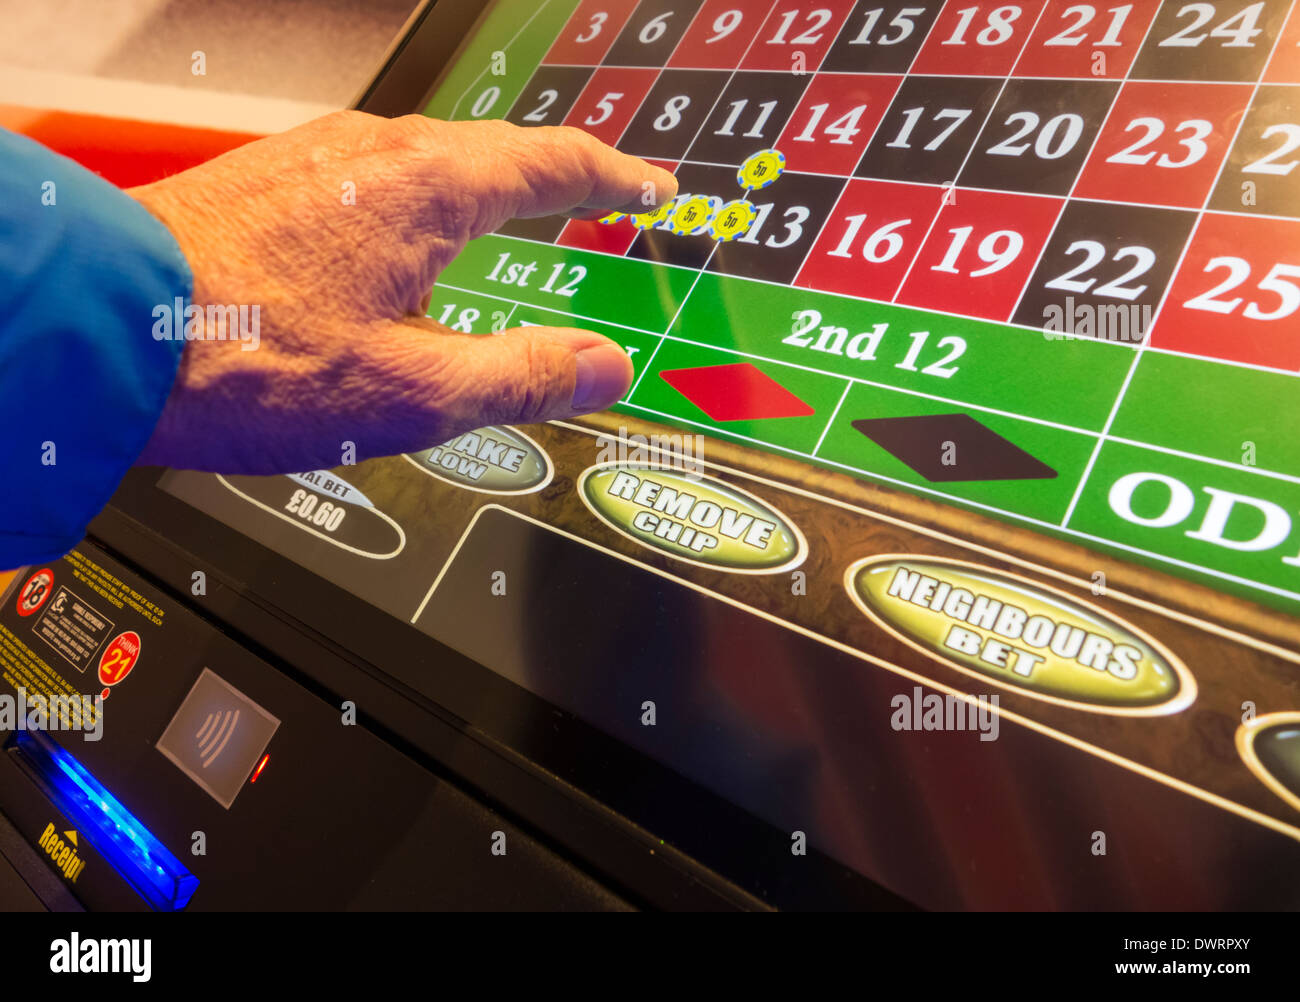 Fixed odds roulette machine (FOBT fixed odds betting terminal) in Bookmakers. UK Stock Photo